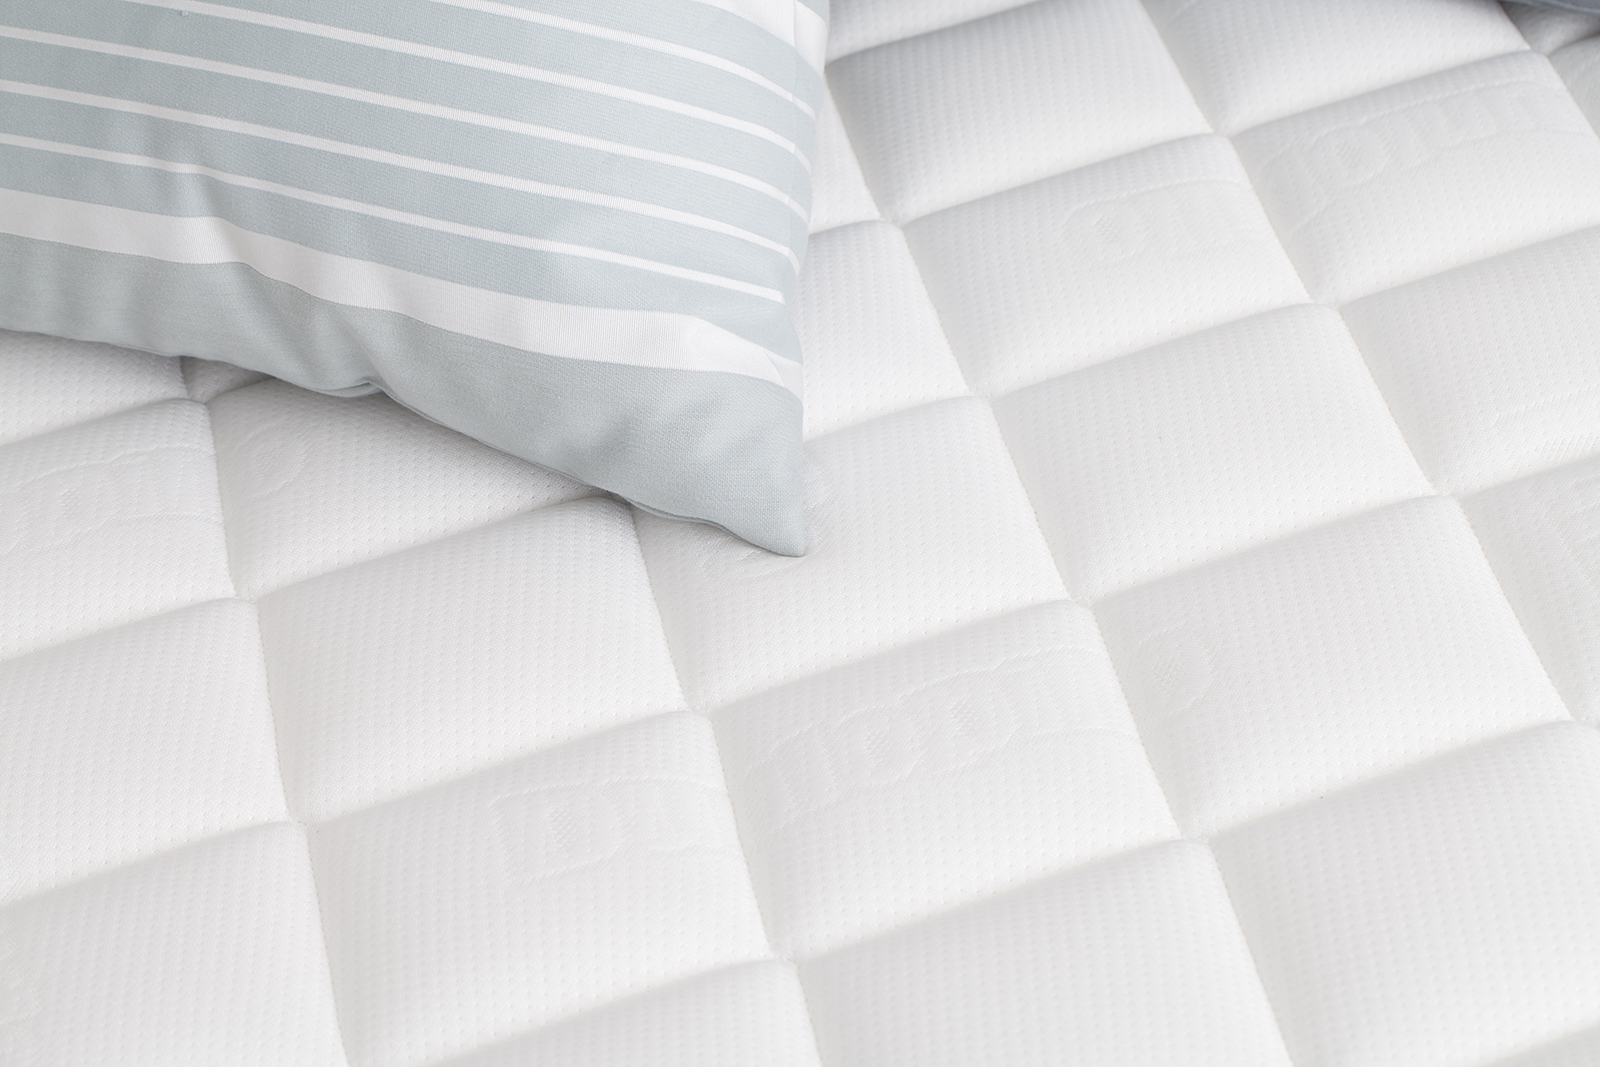 Dunlopillo Mattress Toronto